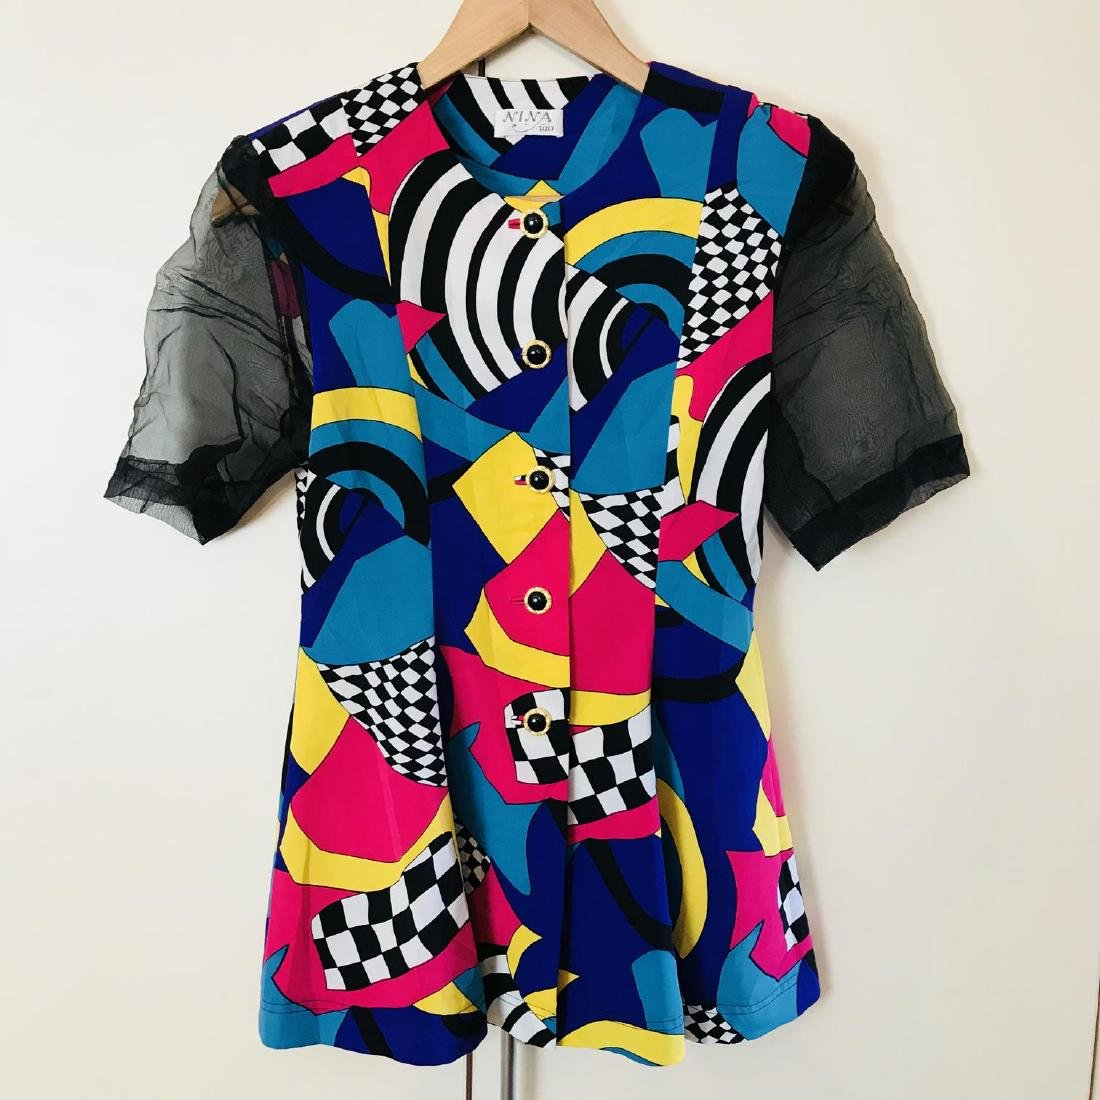 Vintage Women's Nina Riri Summer Blouse Top Size US 8 - 5